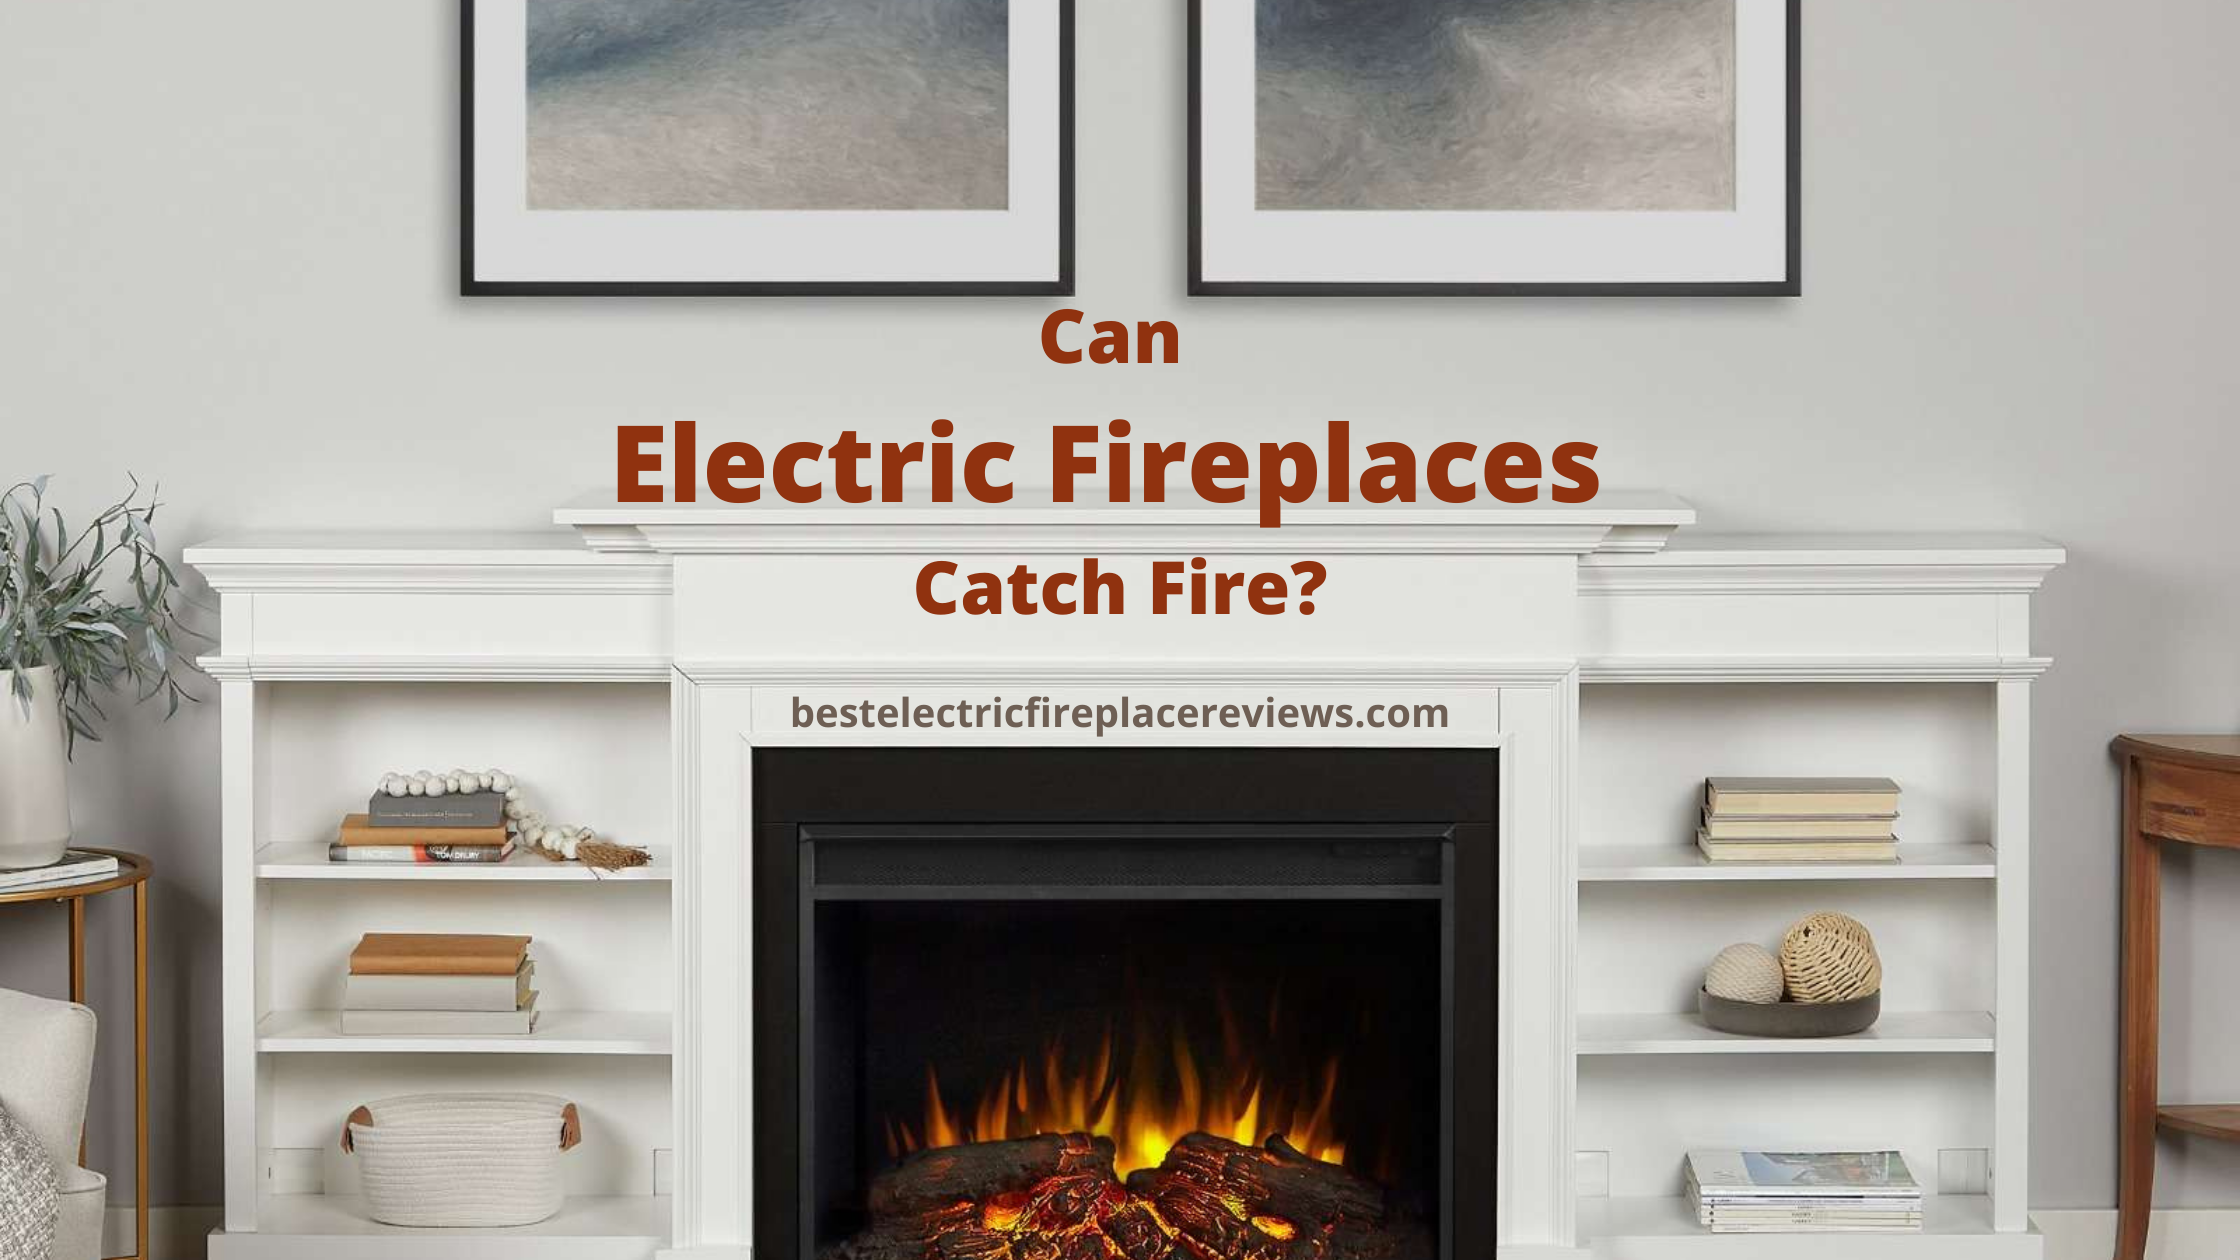 Can Electric Fireplaces Catch Fire?